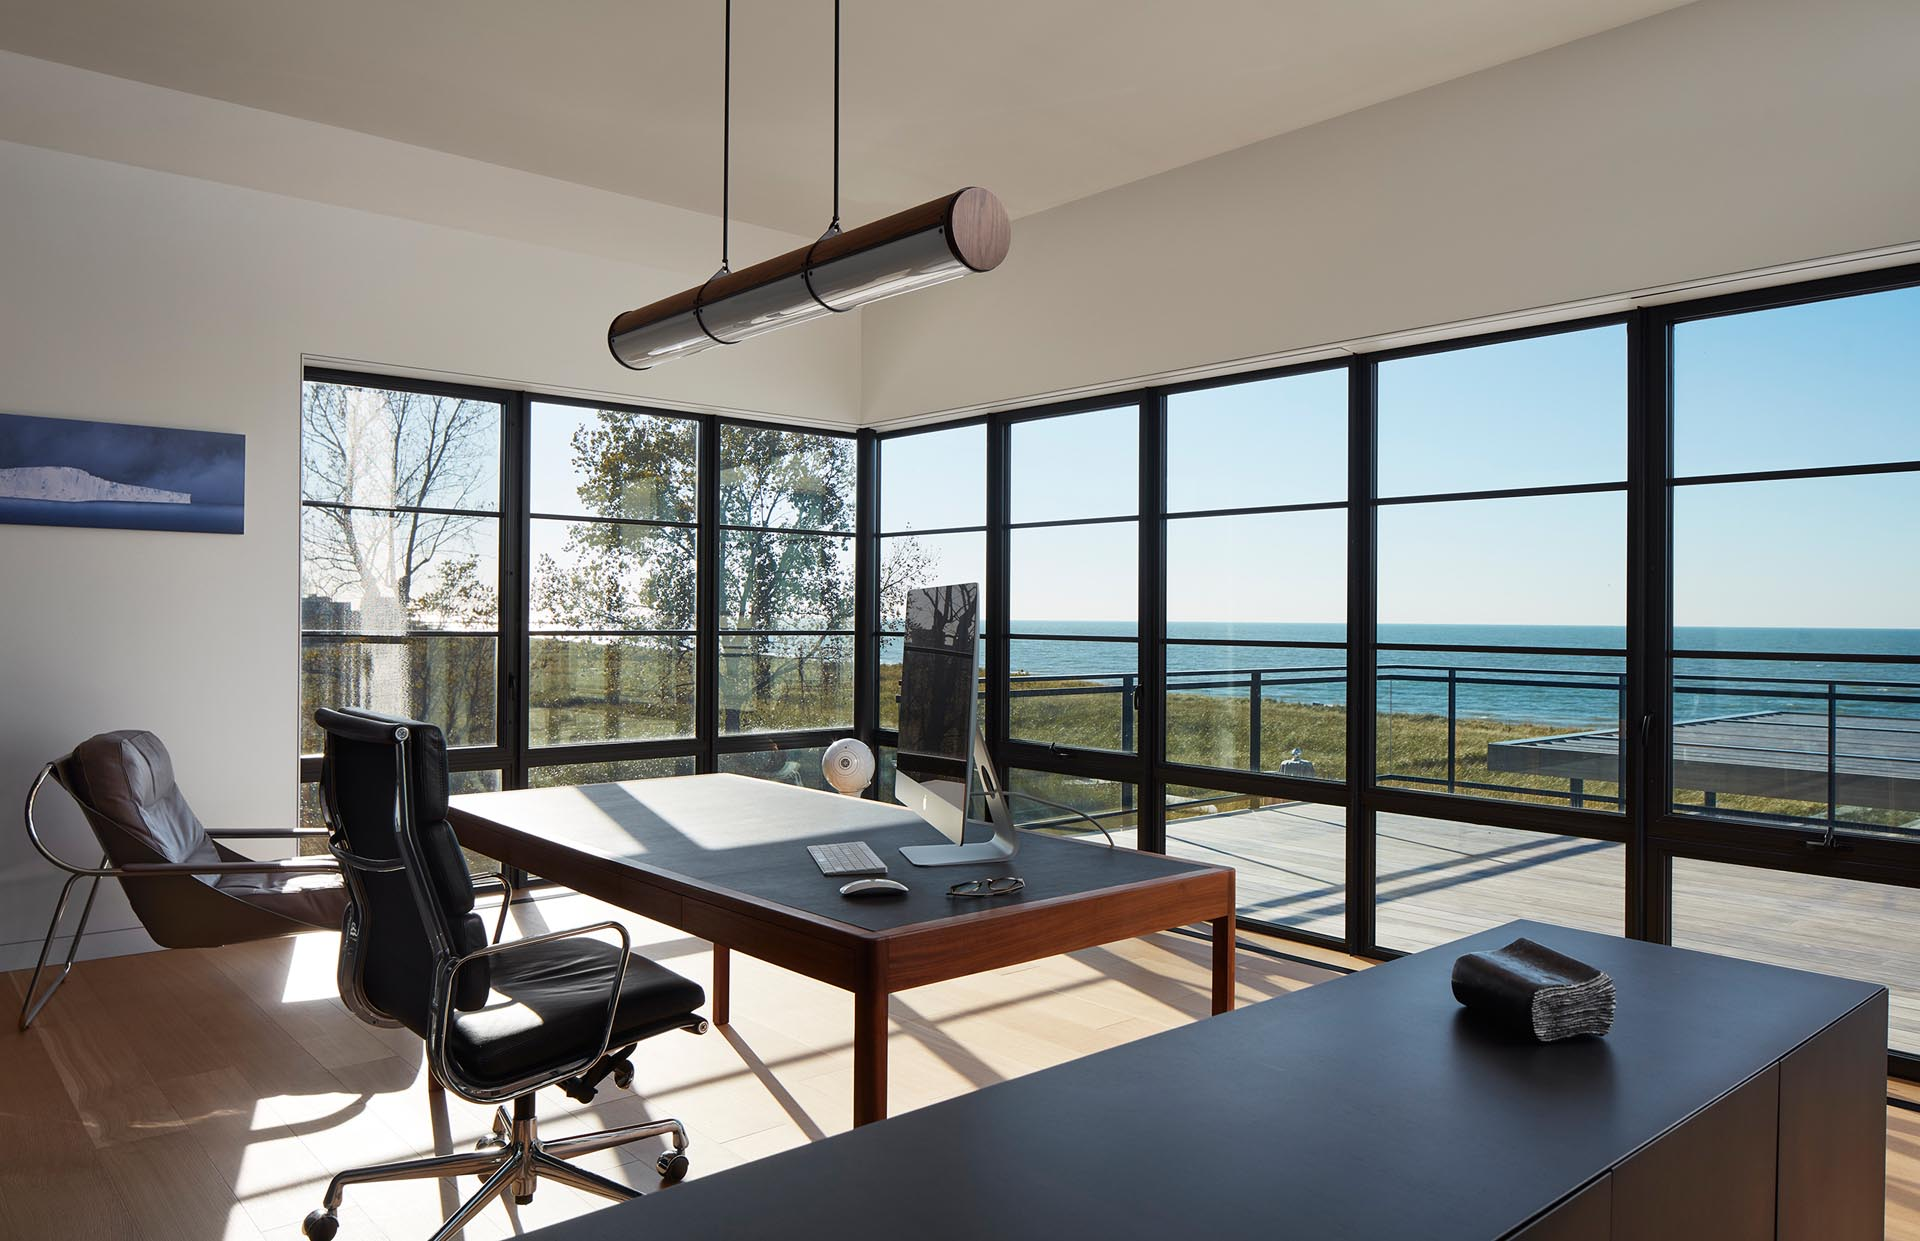 This home office is minimalist in its design, with a desk perfectly positioned for taking advantage of the views.